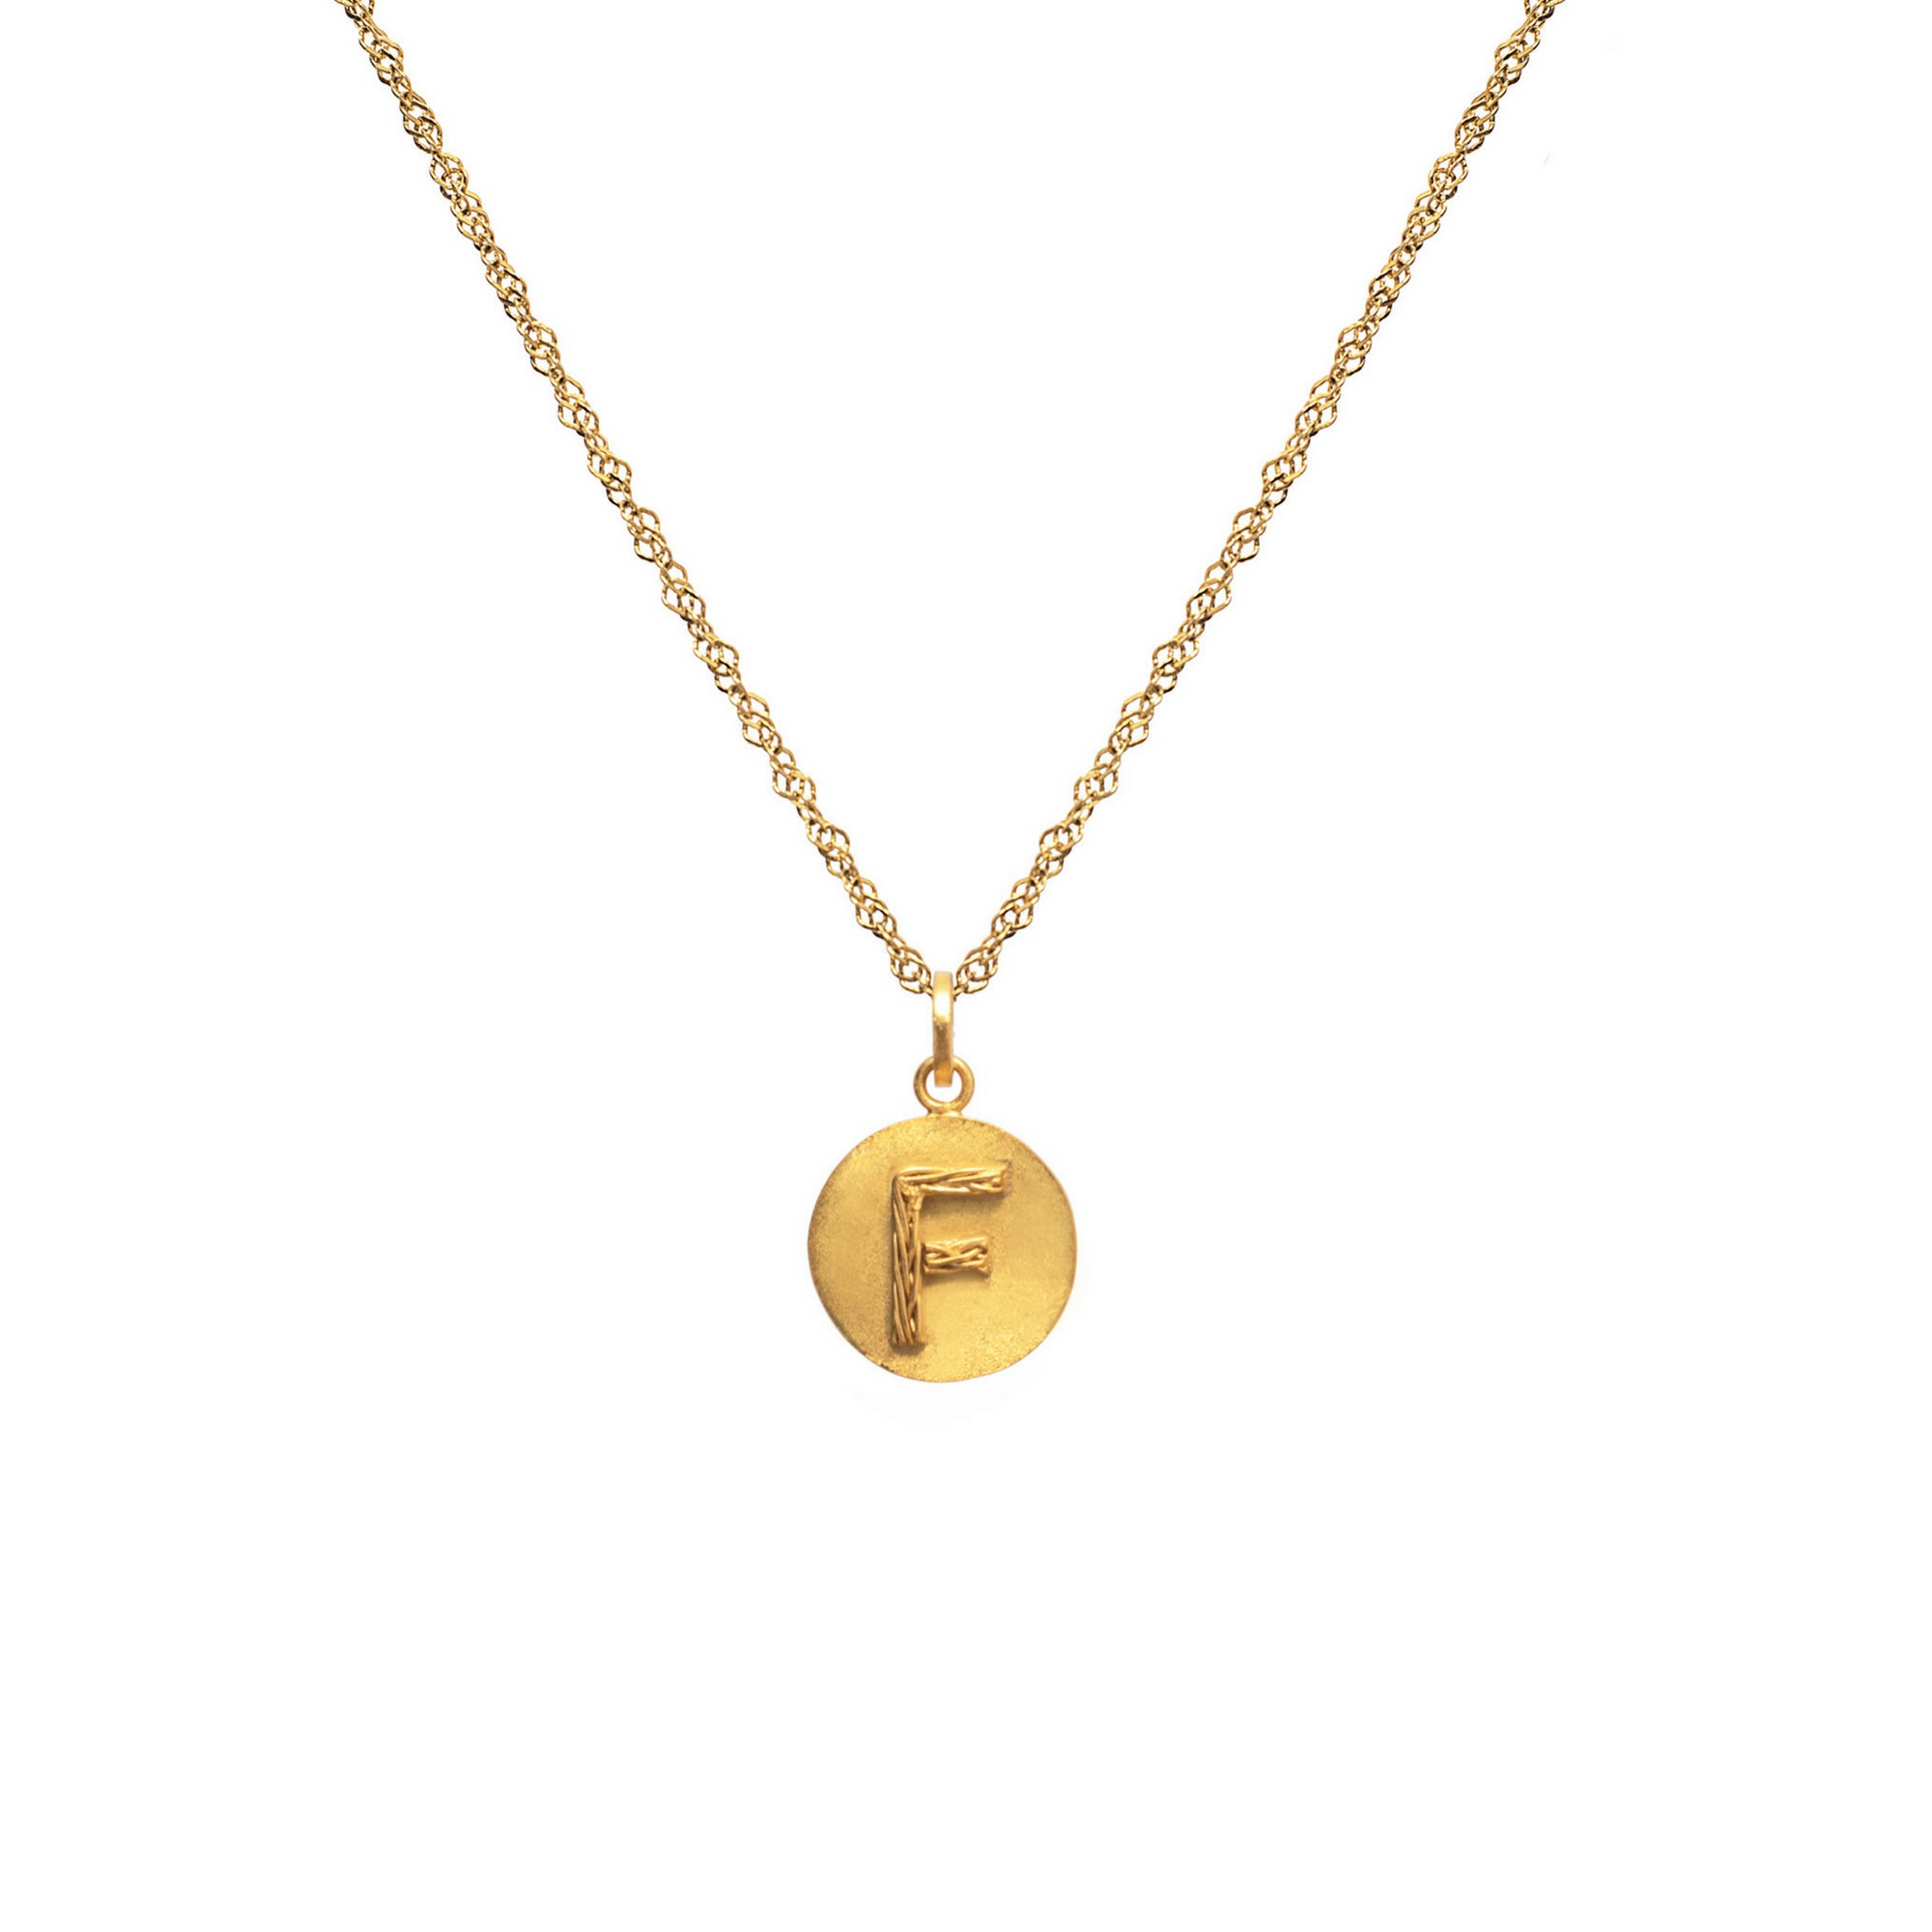 Liza Echeverry Jewelry Colombia Initials Capsule Collection Charm Initials Necklace